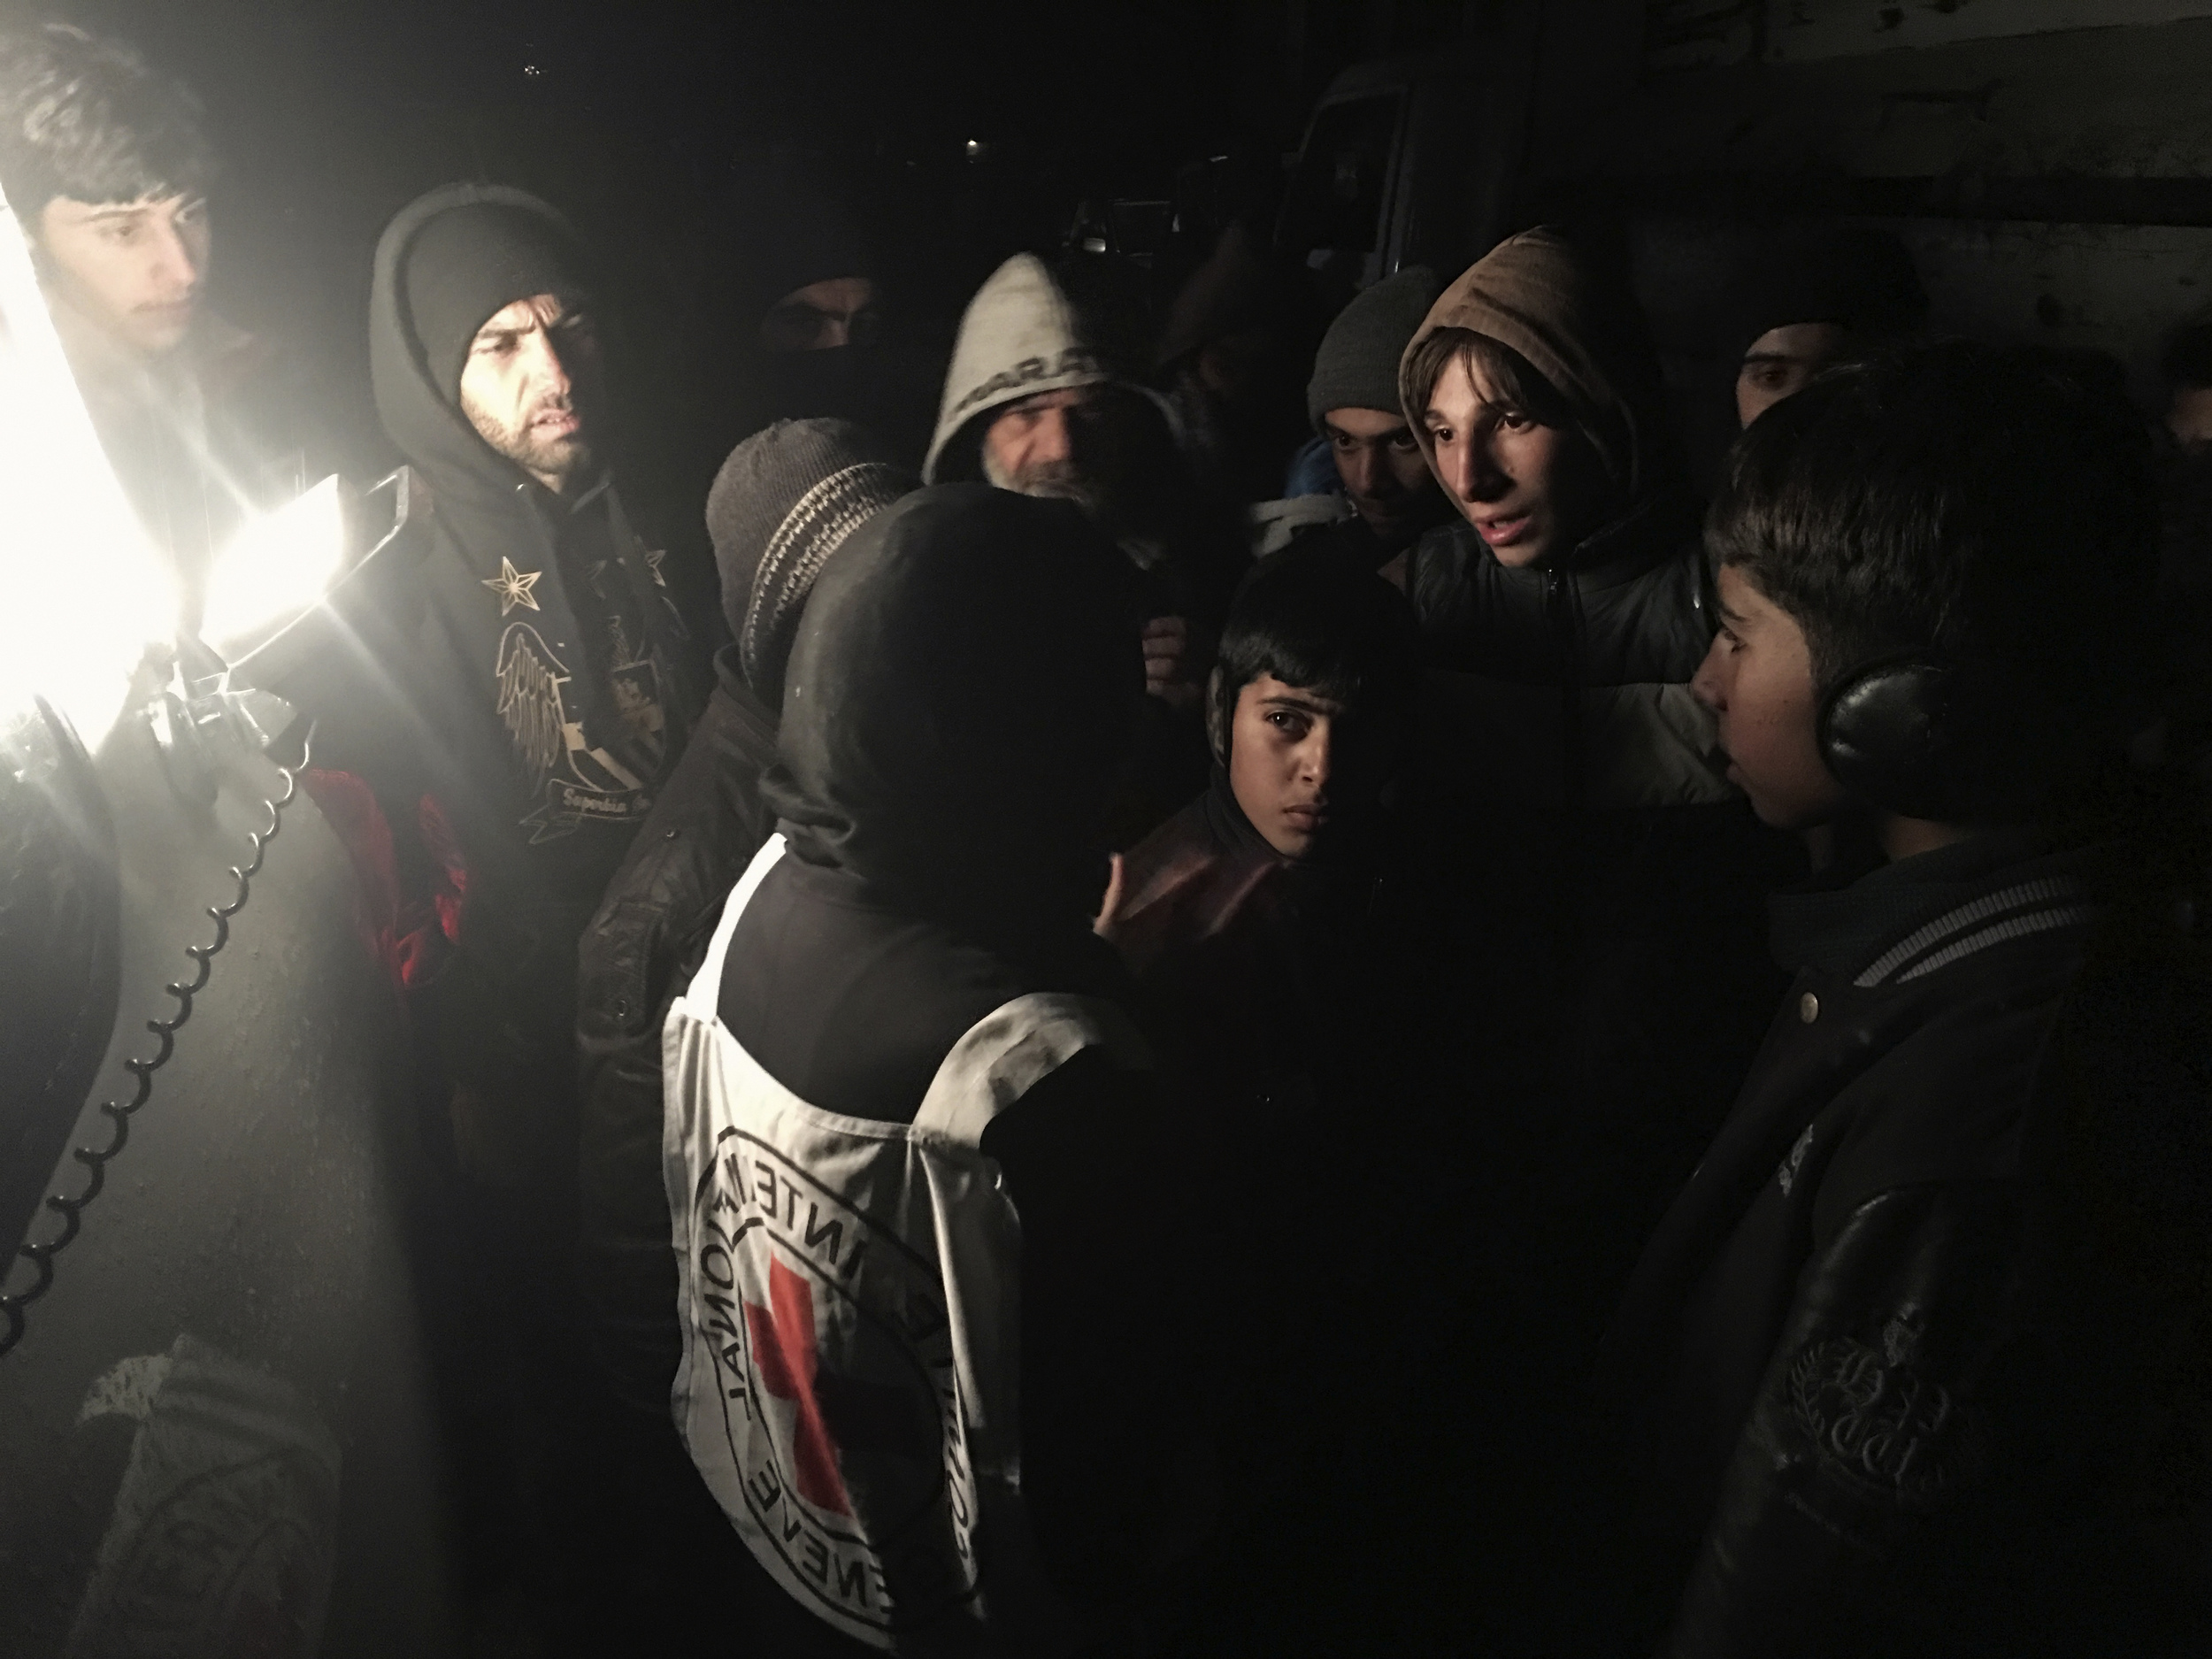 JANUARY, 2016, MADAYA.  ICRC's HEAD OF DELEGATION IN SYRIA, MARIANNE GASSER, SPEAKS TO RESIDENTS AS THEY GATHEREr AROUND AN AID CONVOY. © ICRC/ pawel KRZYSIEK.